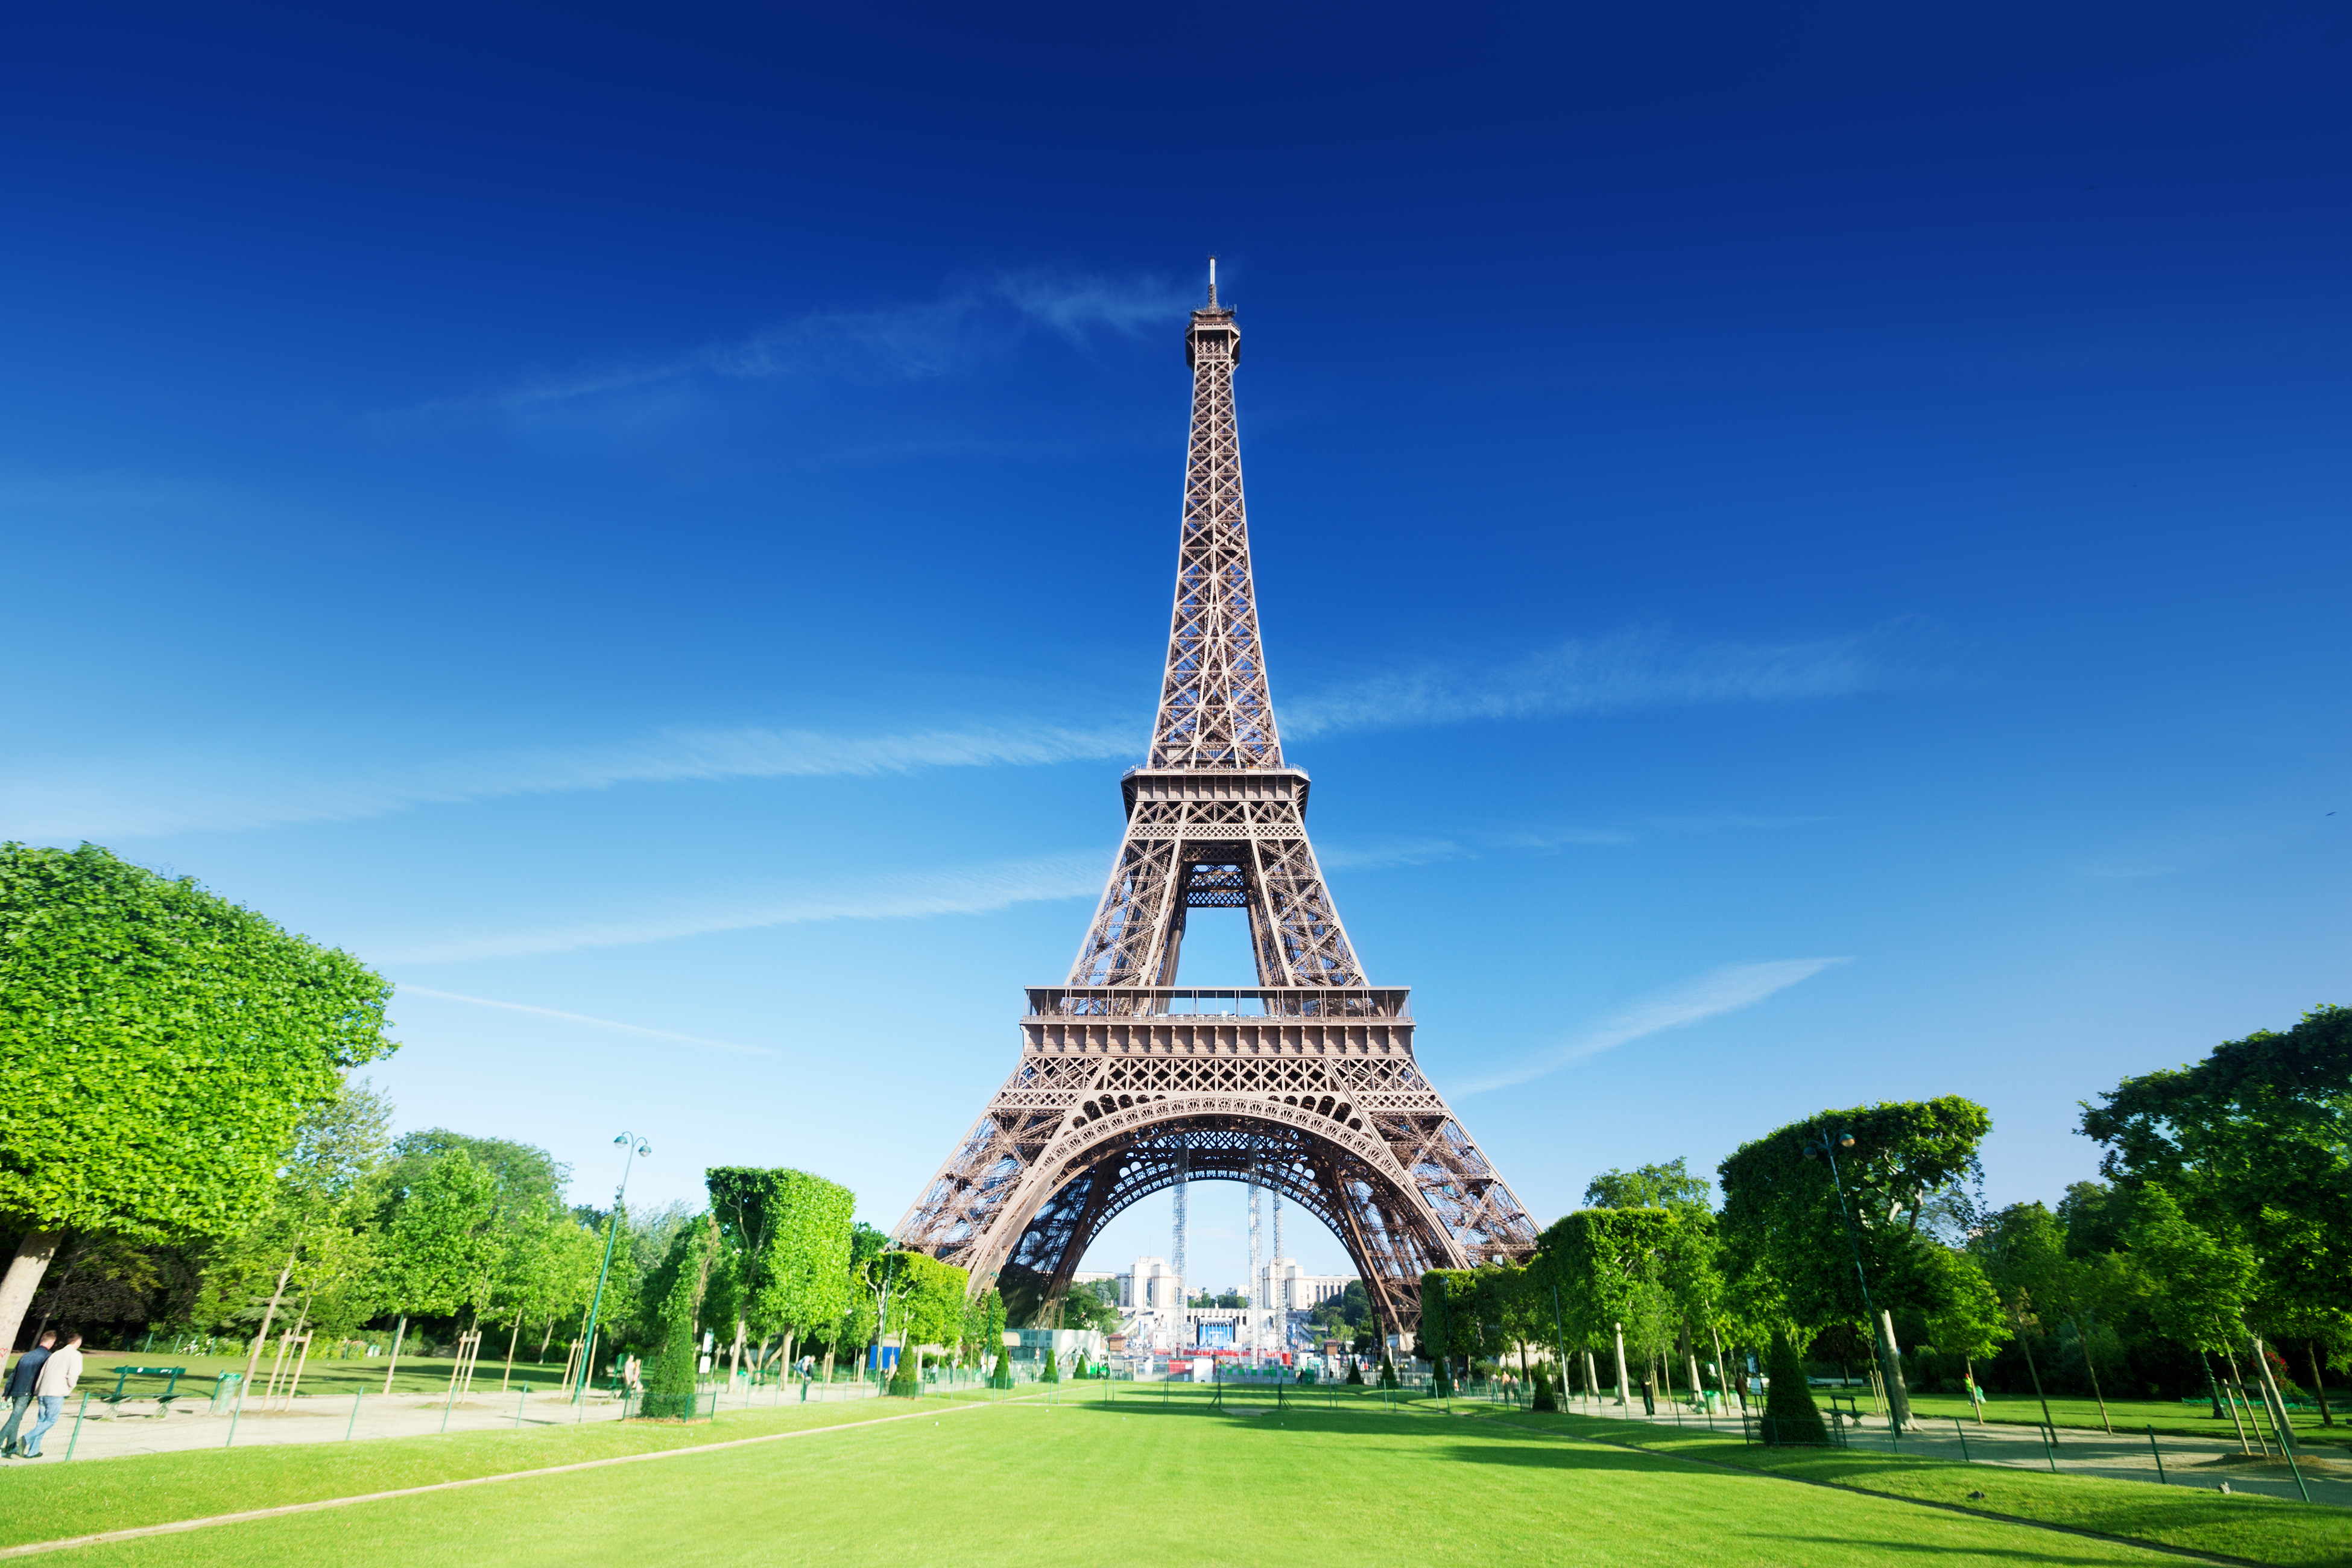 Eiffel Tower is located in Paris, France